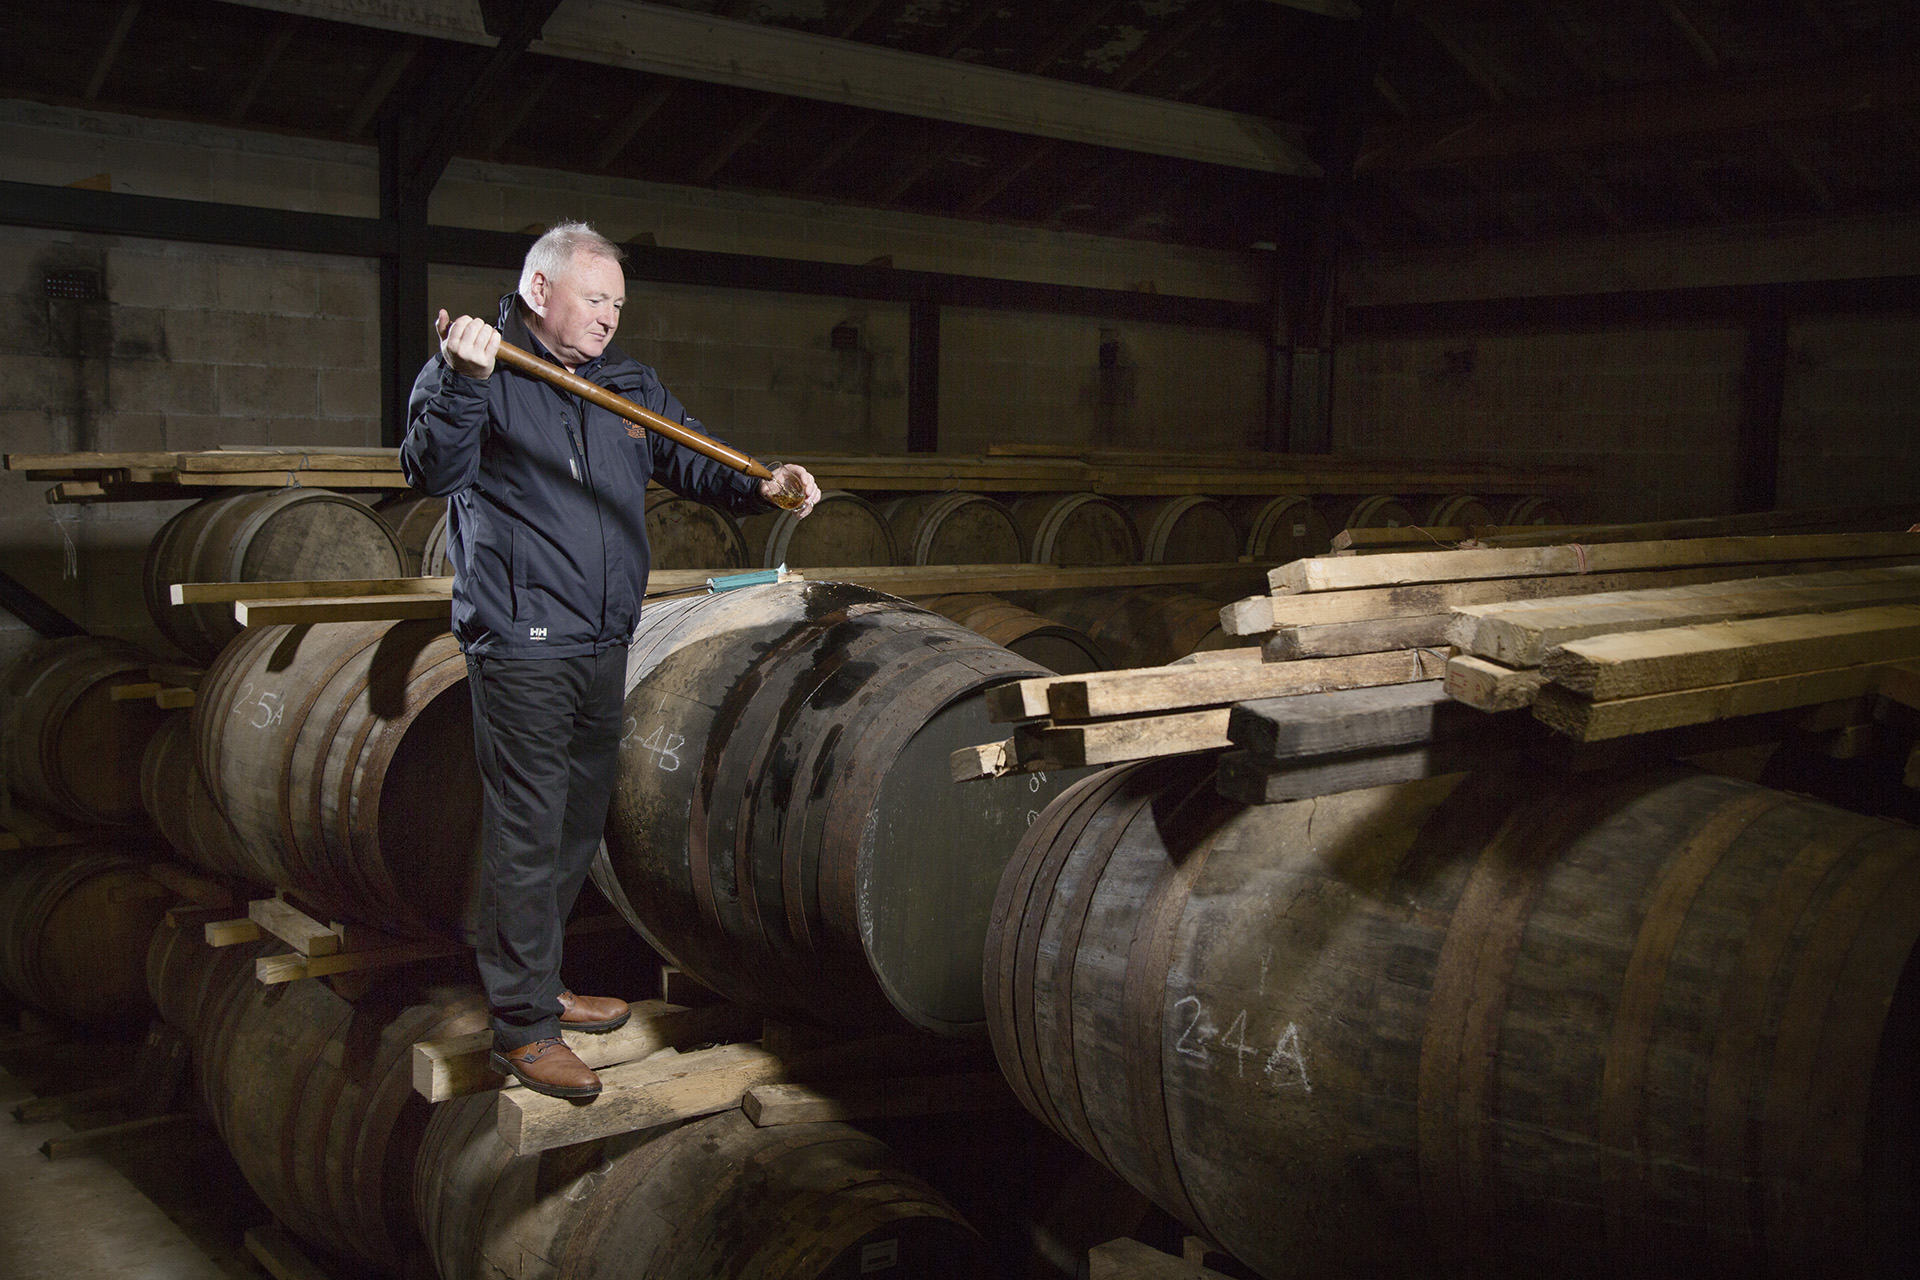 James MacTaggart, Master Craftsman at Isle of Arran Distillery.